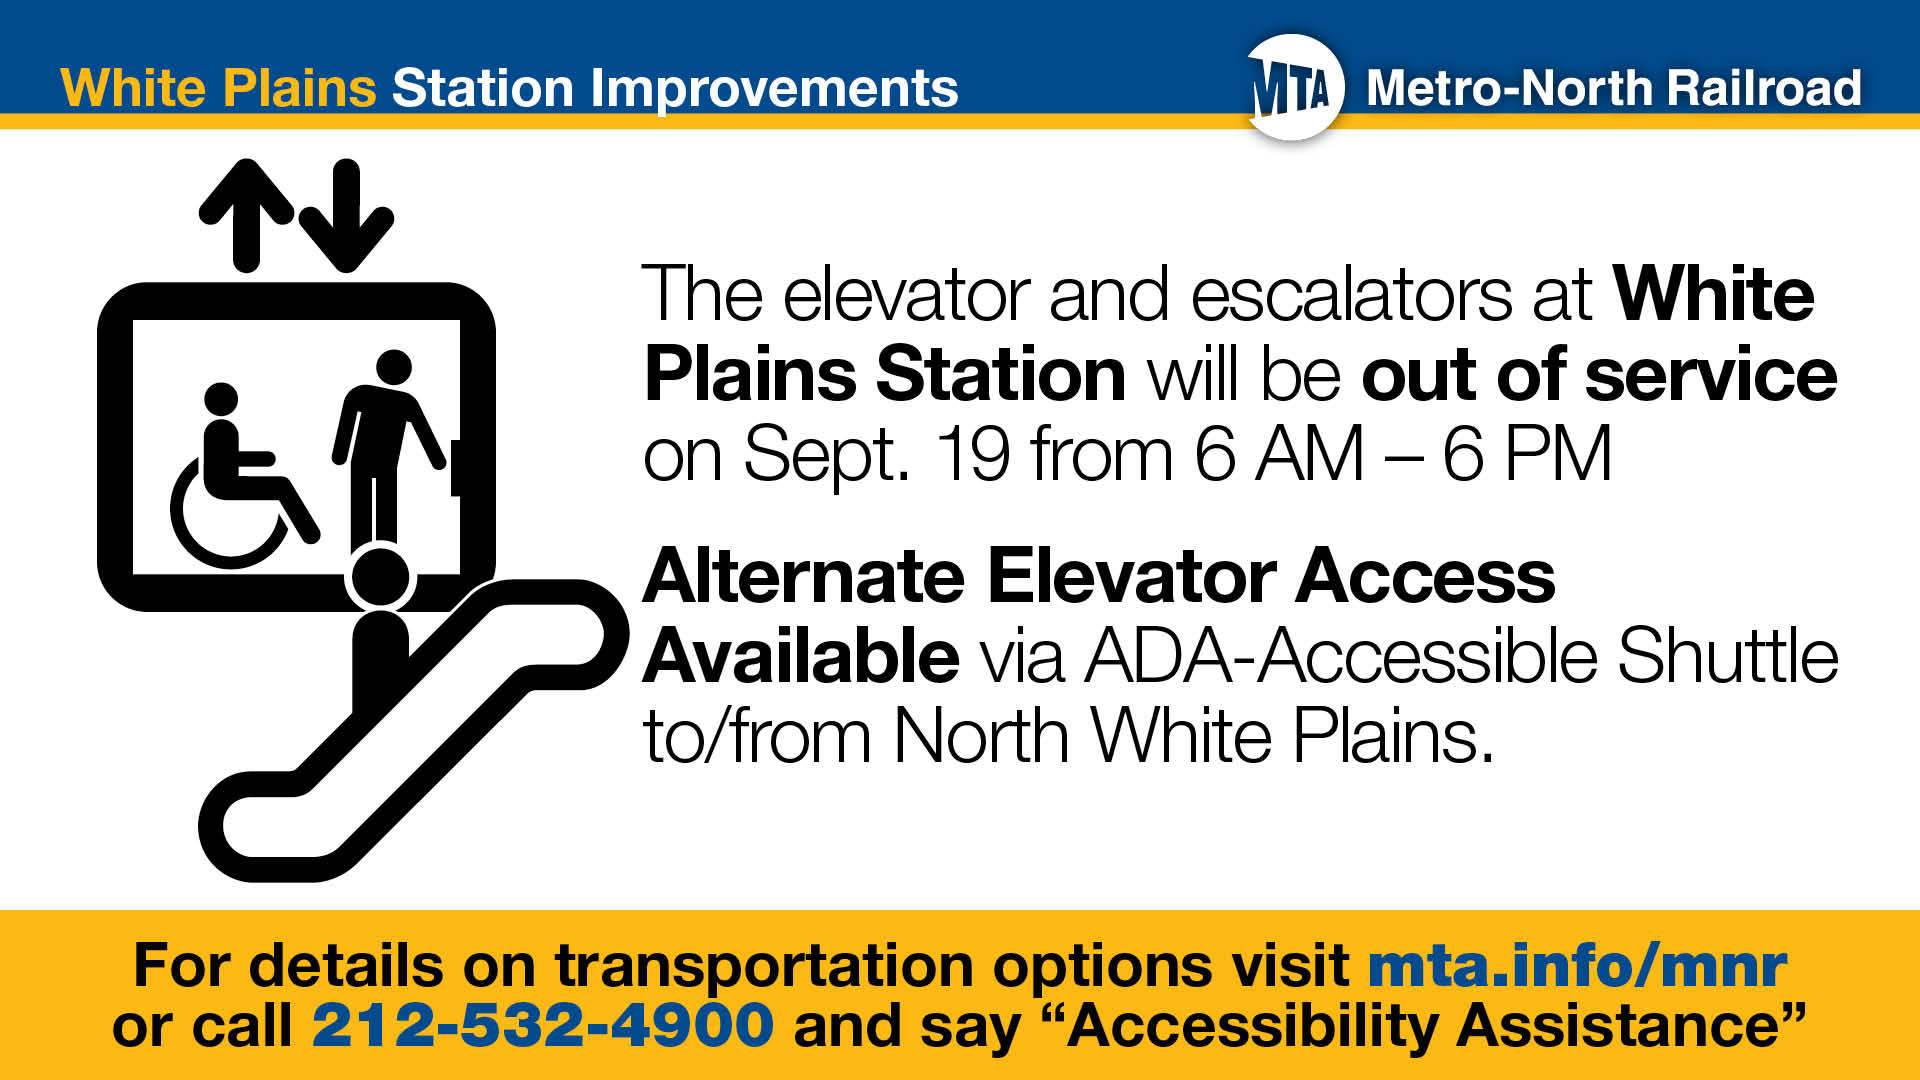 ADA WP MetroNorth platform out of service sept 19